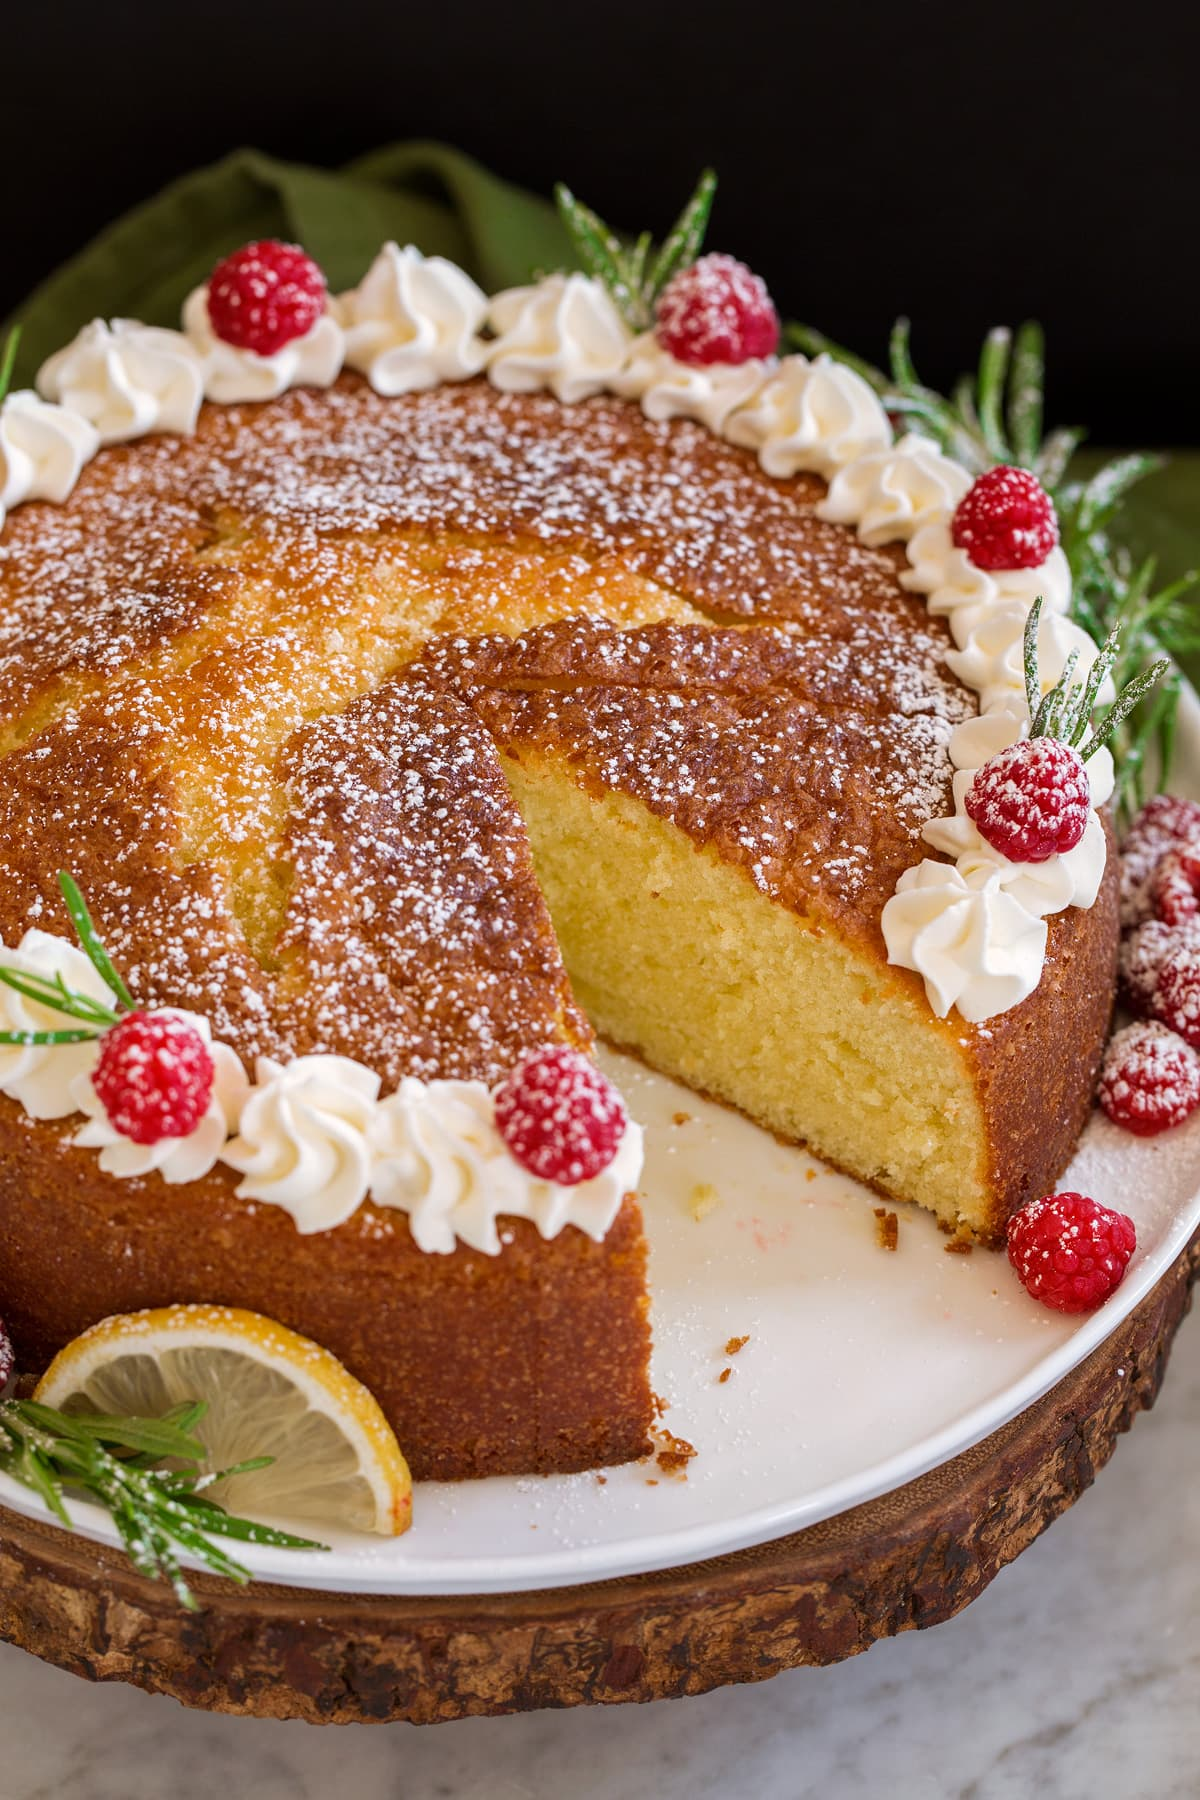 Photo of whole olive oil cake with one slice removed.